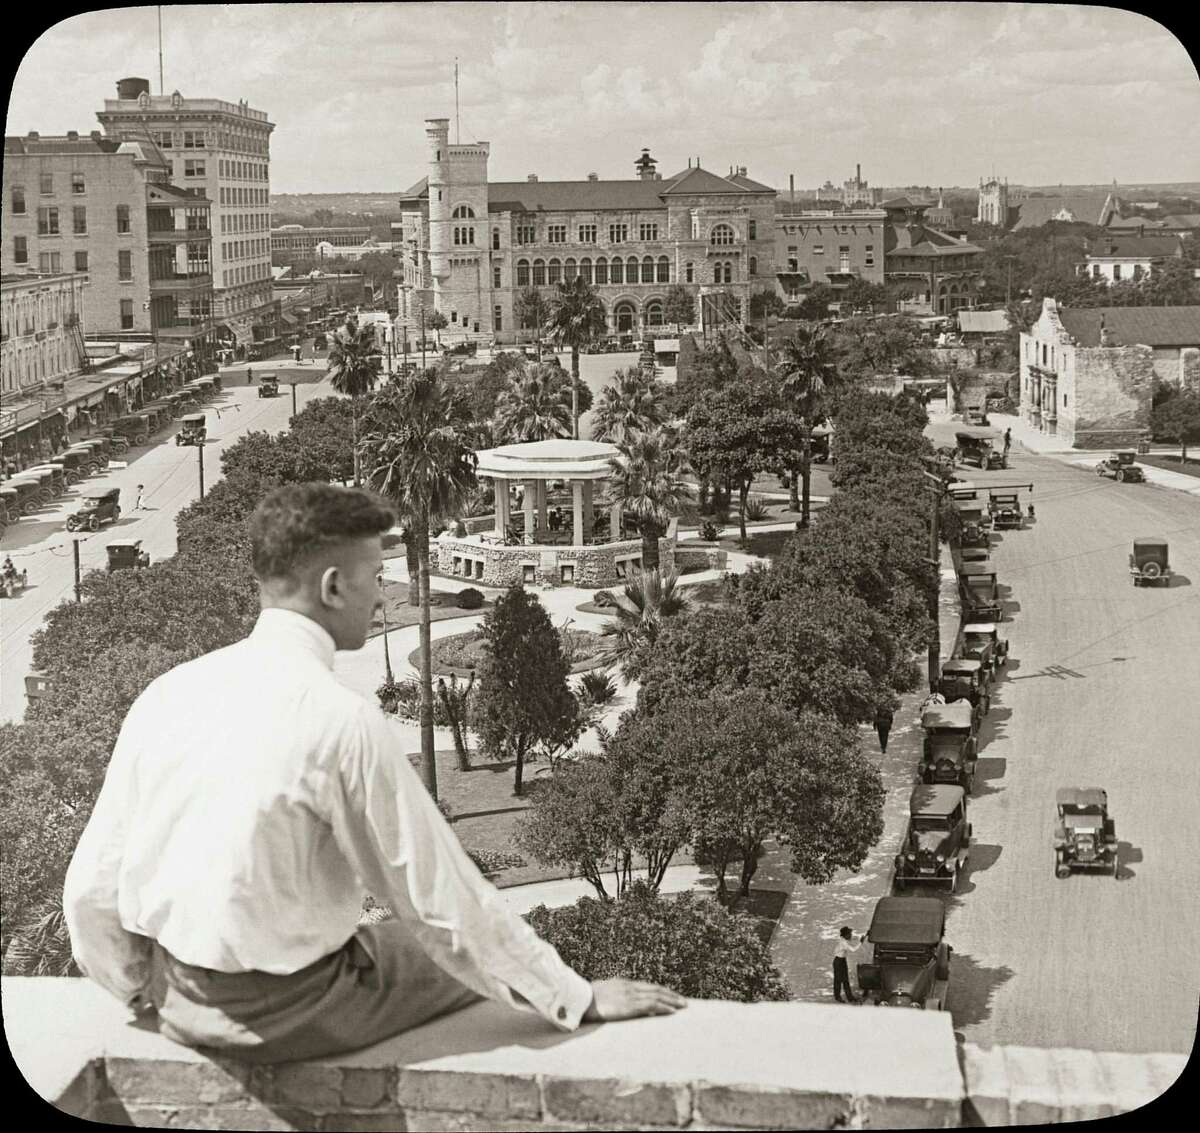 The '20s: The view looking north at Alamo Plaza. The Alamo can be seen at the top right corner.